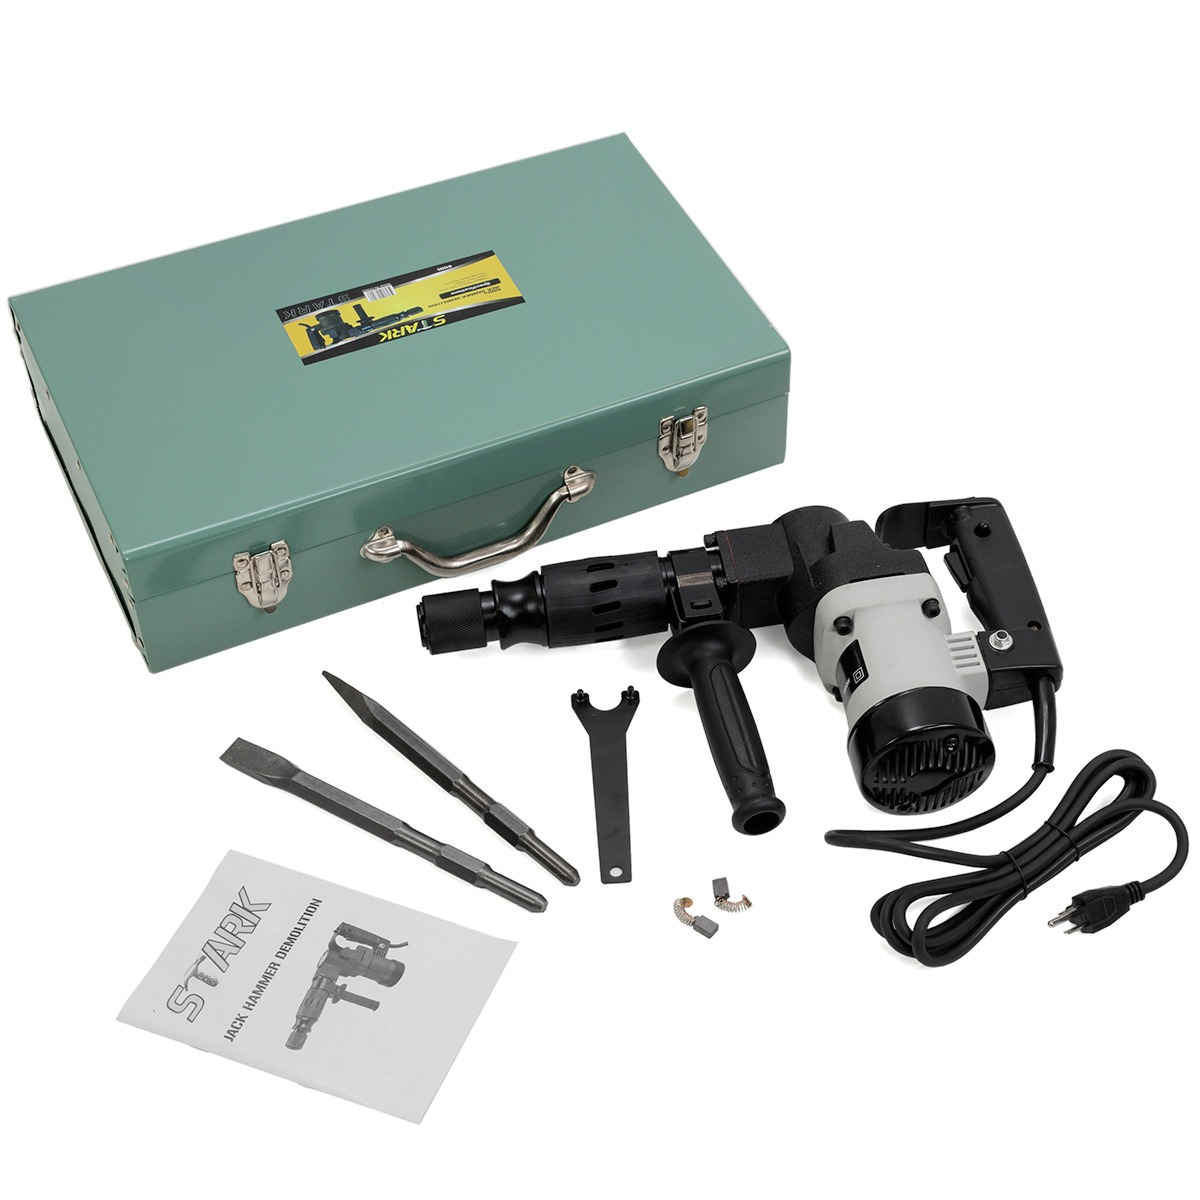 """1000W 1-1/2"""" Electric Jack Hammer Concrete Breaker, with Chisel Bits&Case"""